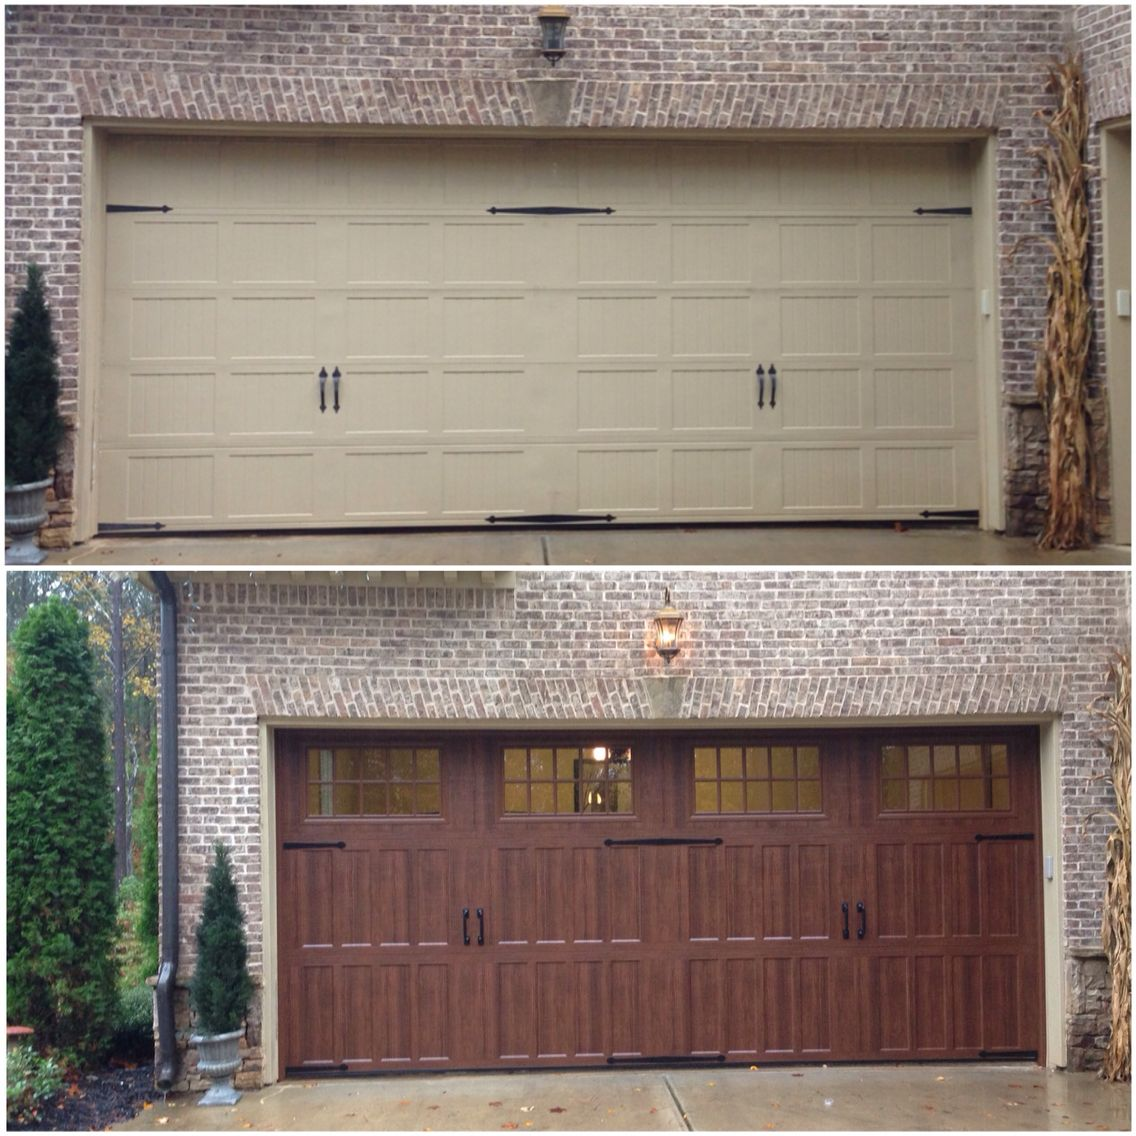 Before And After We Installed An Amarr Classica 18x8 Steel Door With Walnut Color And A Liftmaster 8550w 26 Garage Doors Garage Door Styles Garage Door Design